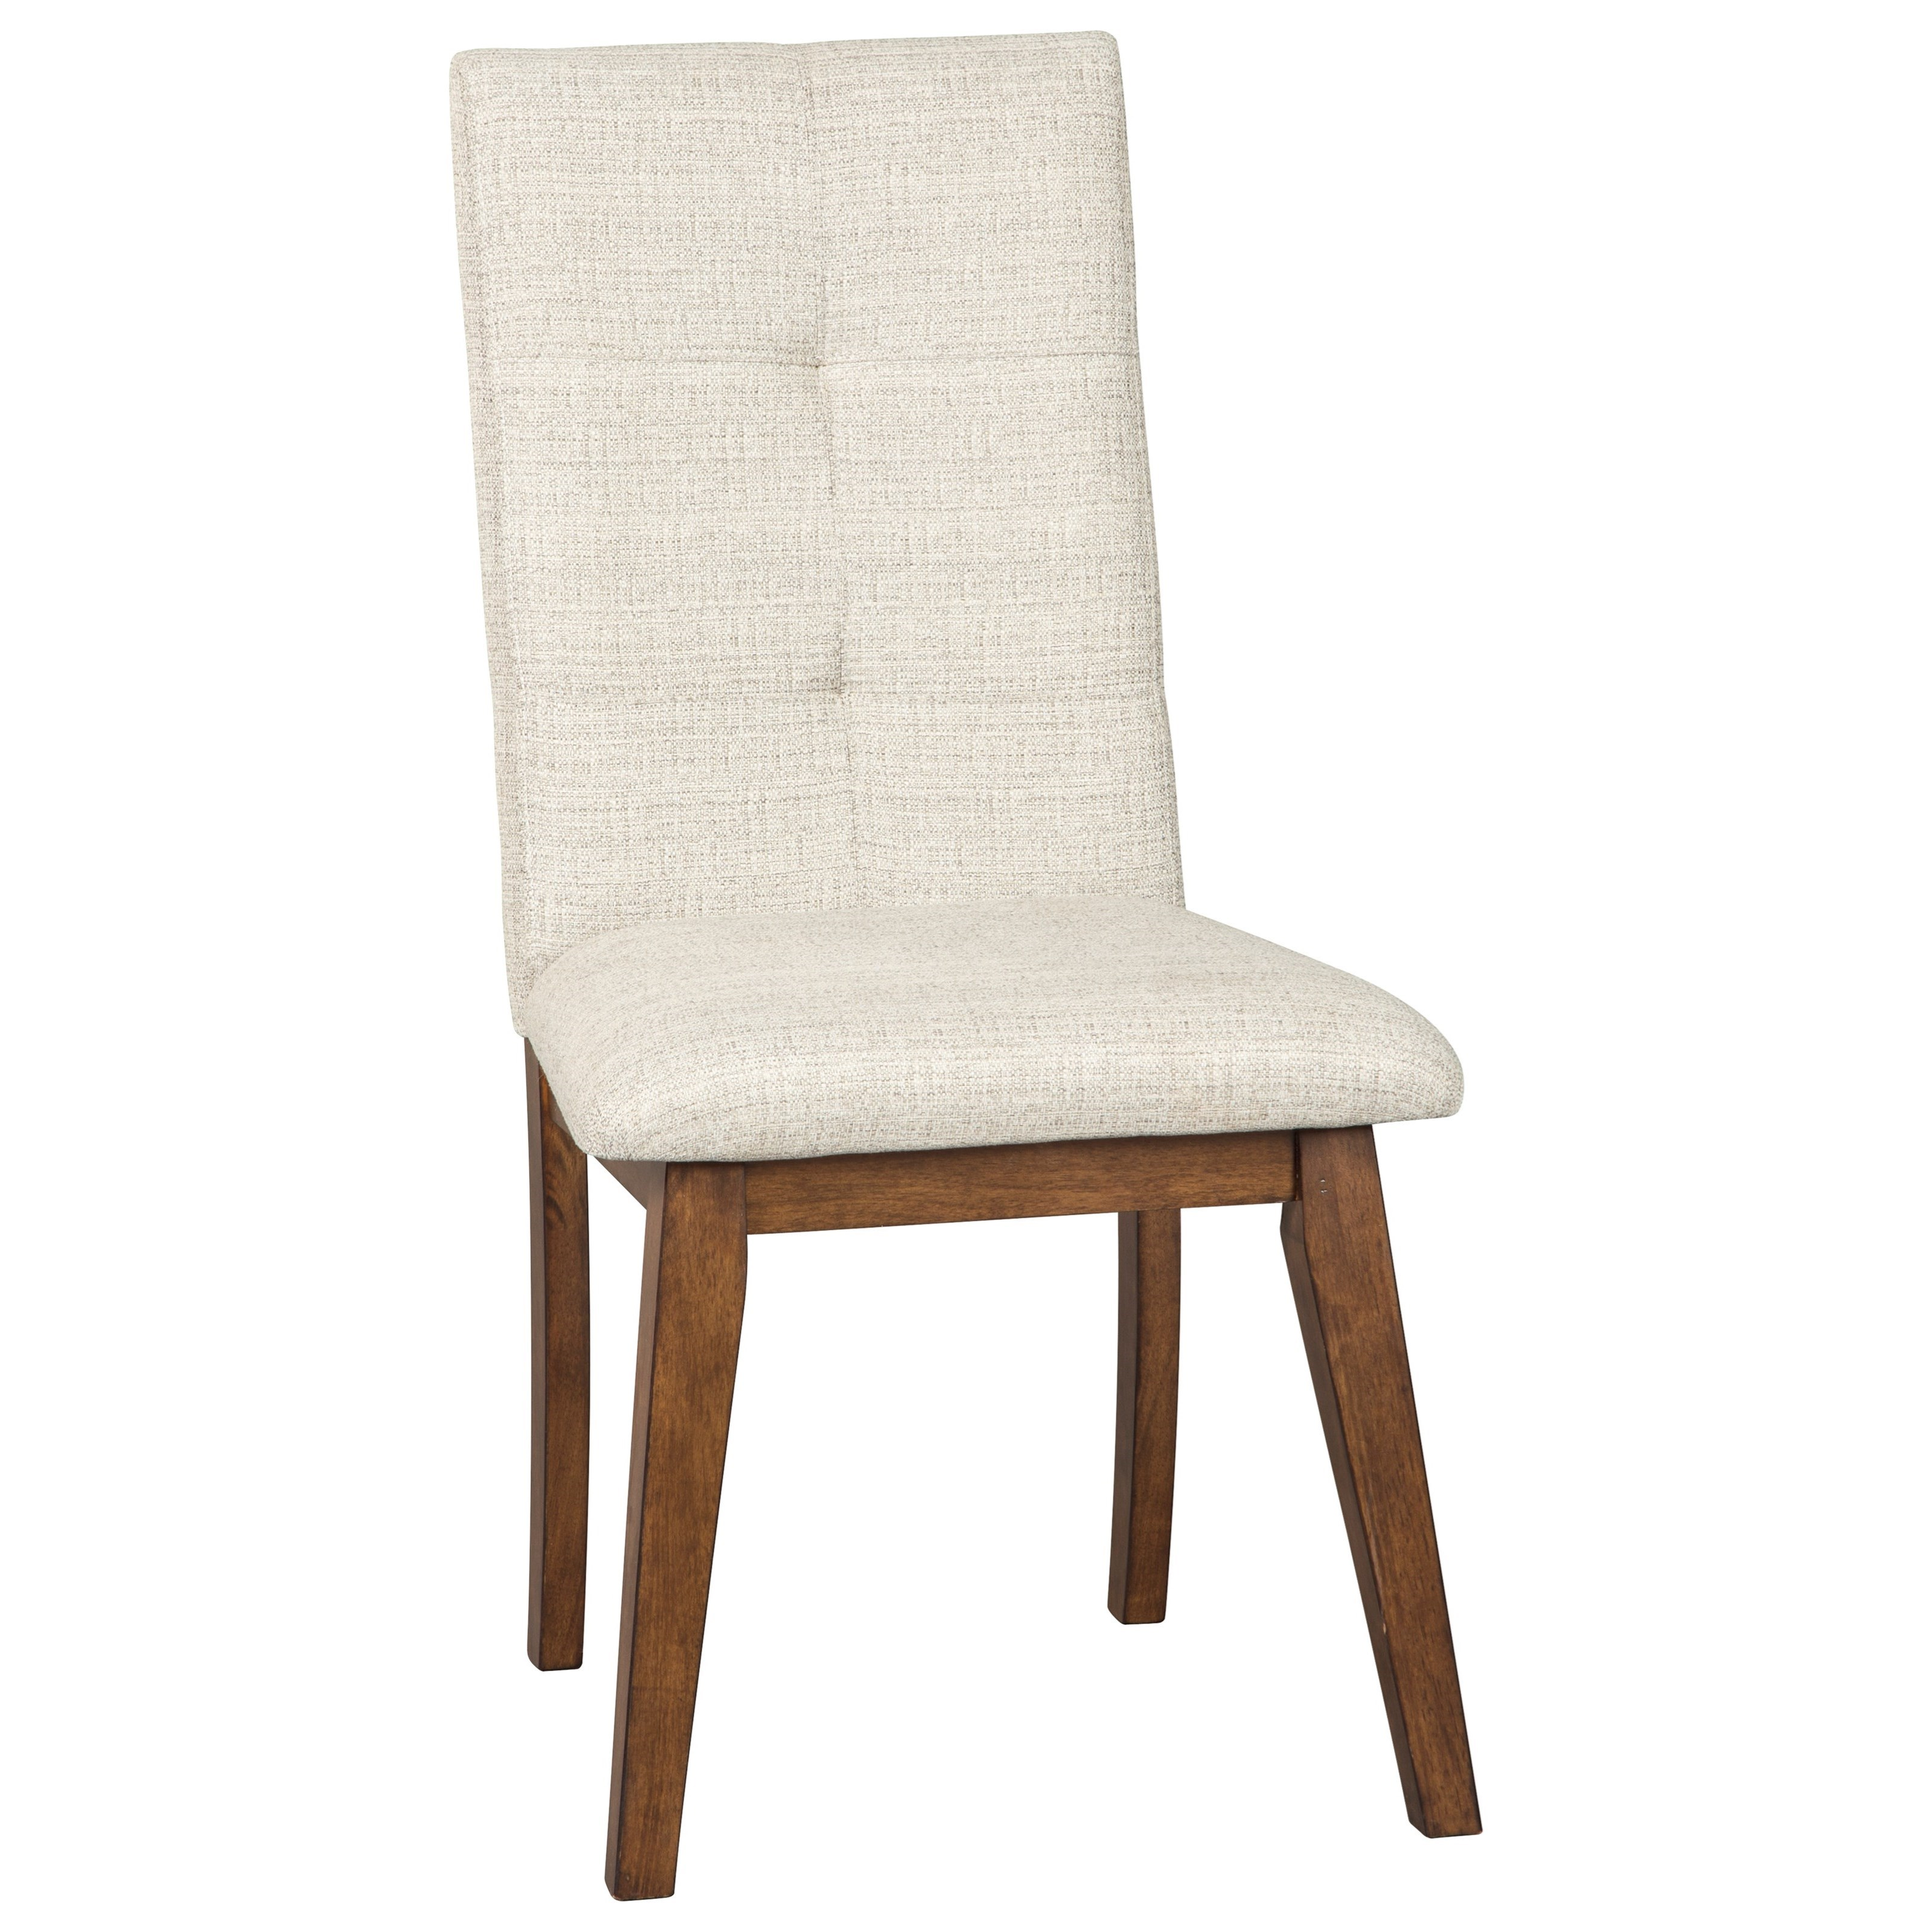 Upholstered Dining Chairs Ashley Furniture